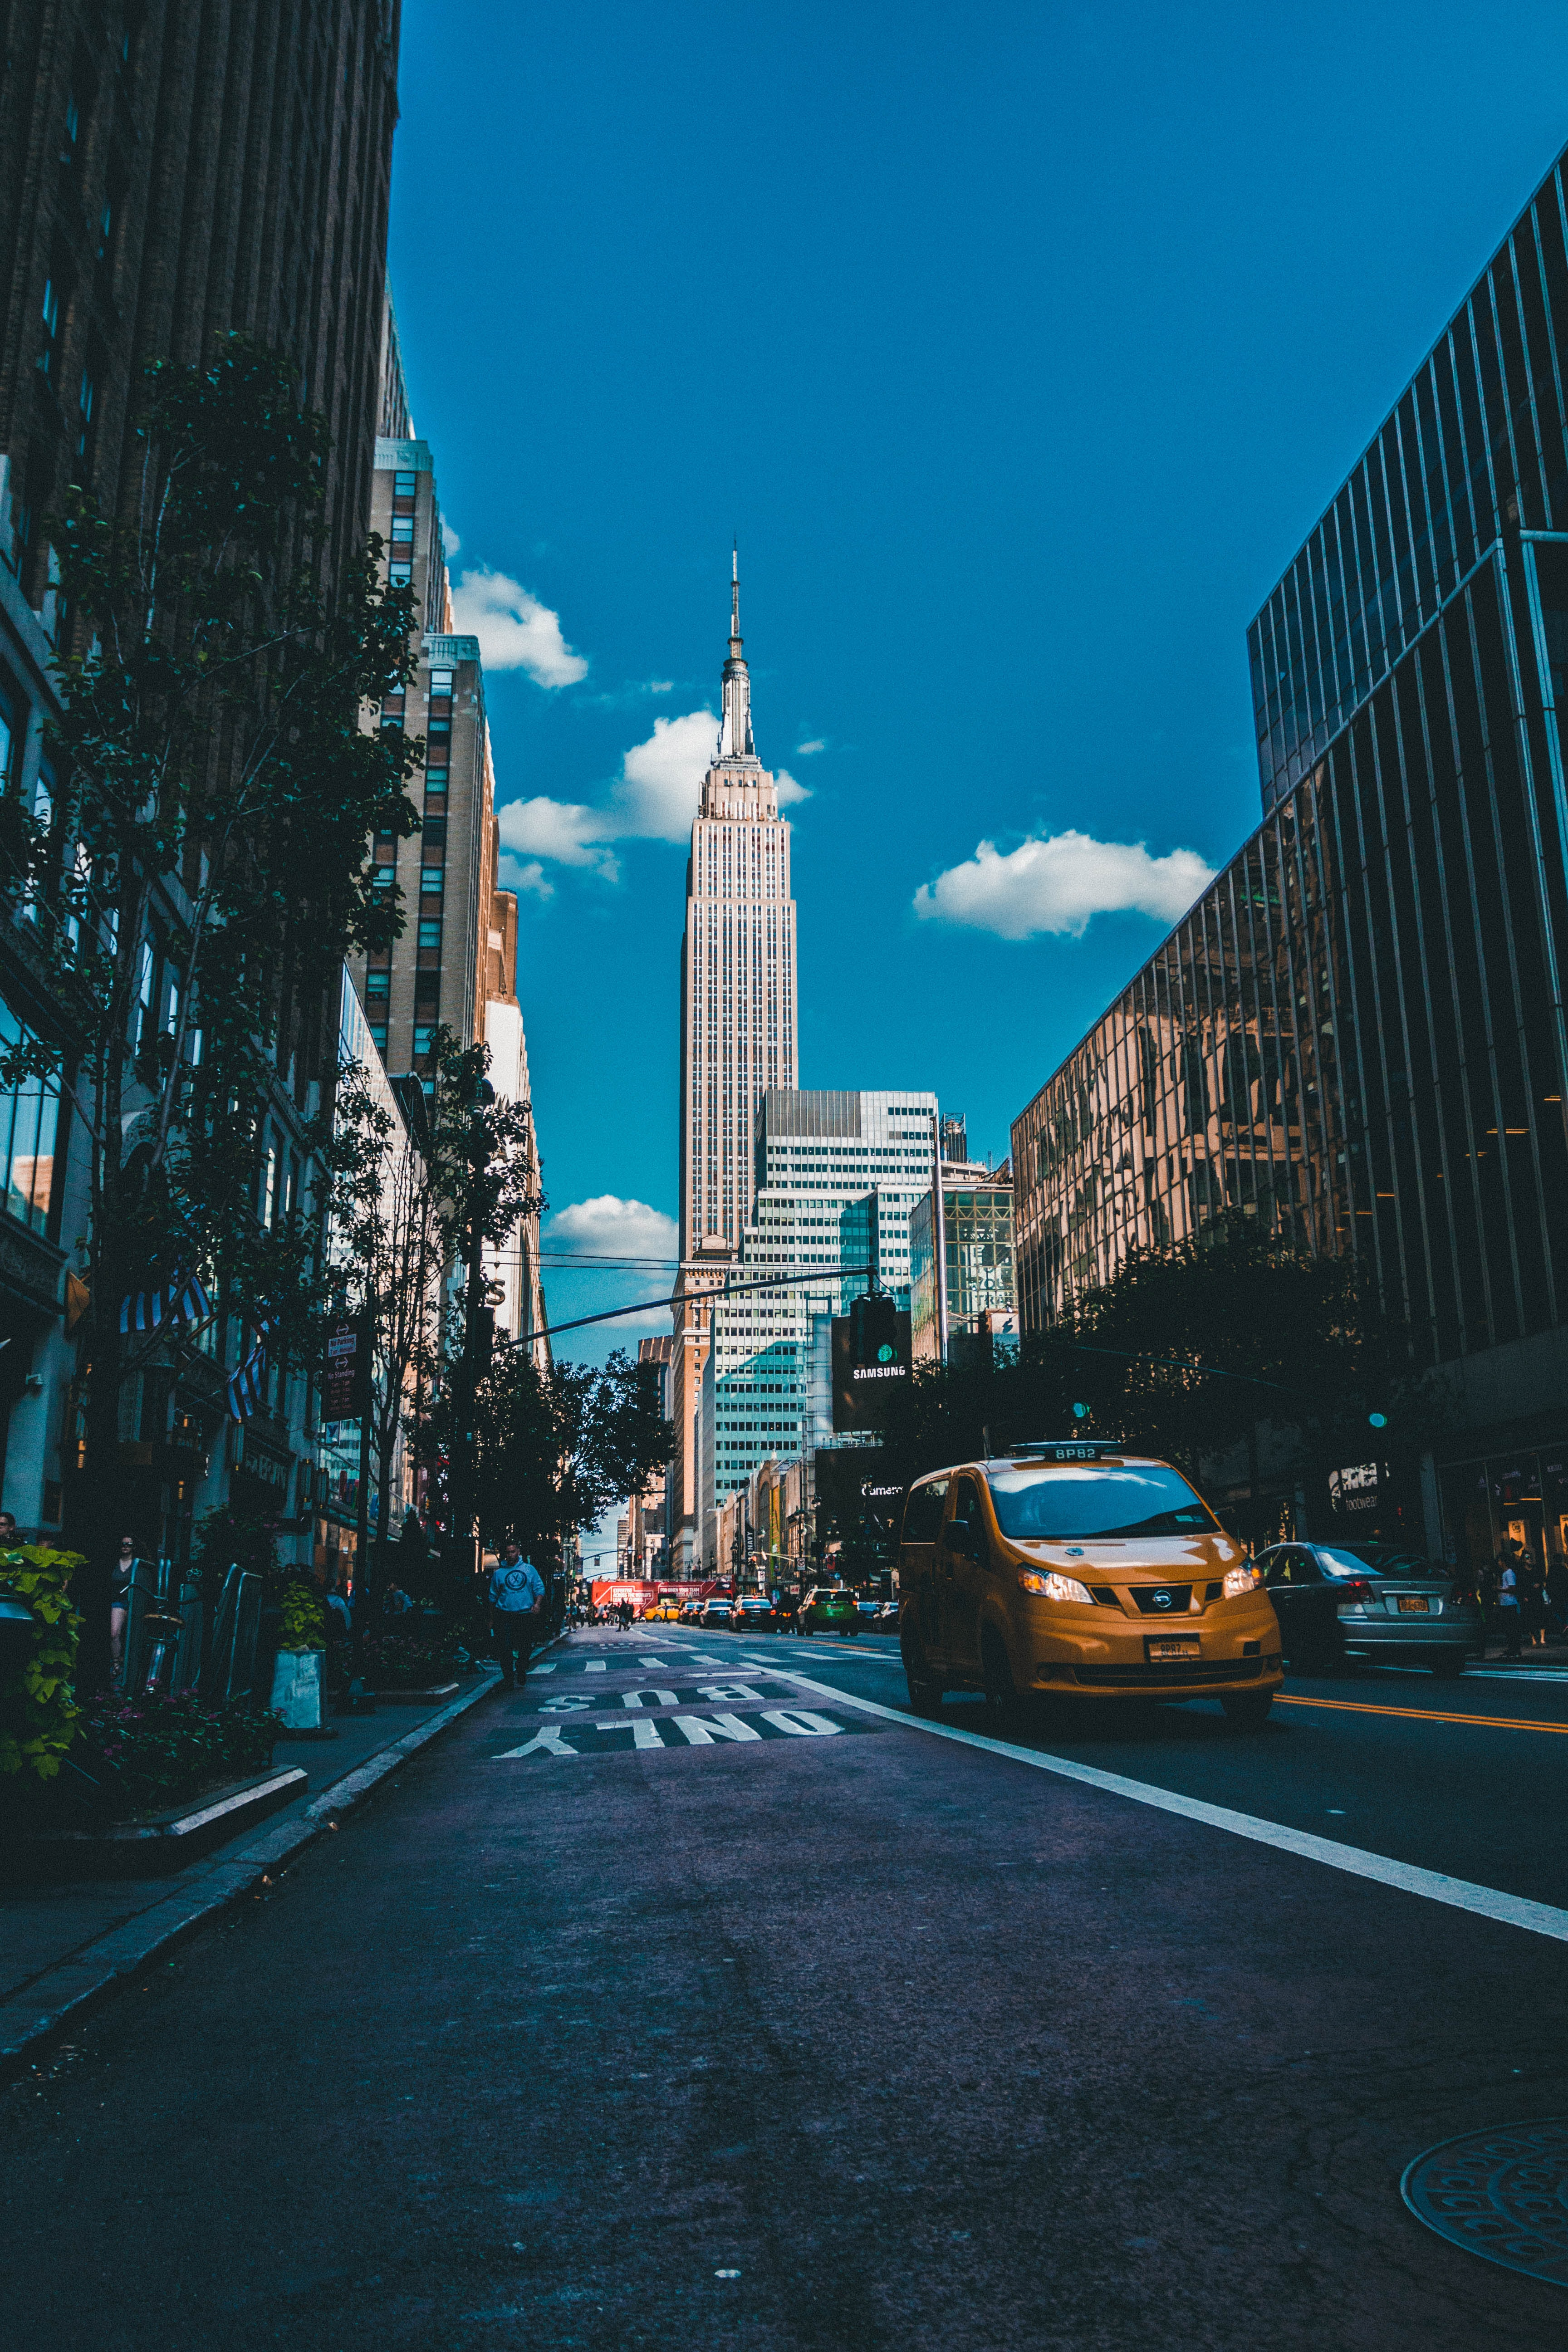 photo of Empire State Building in New York city